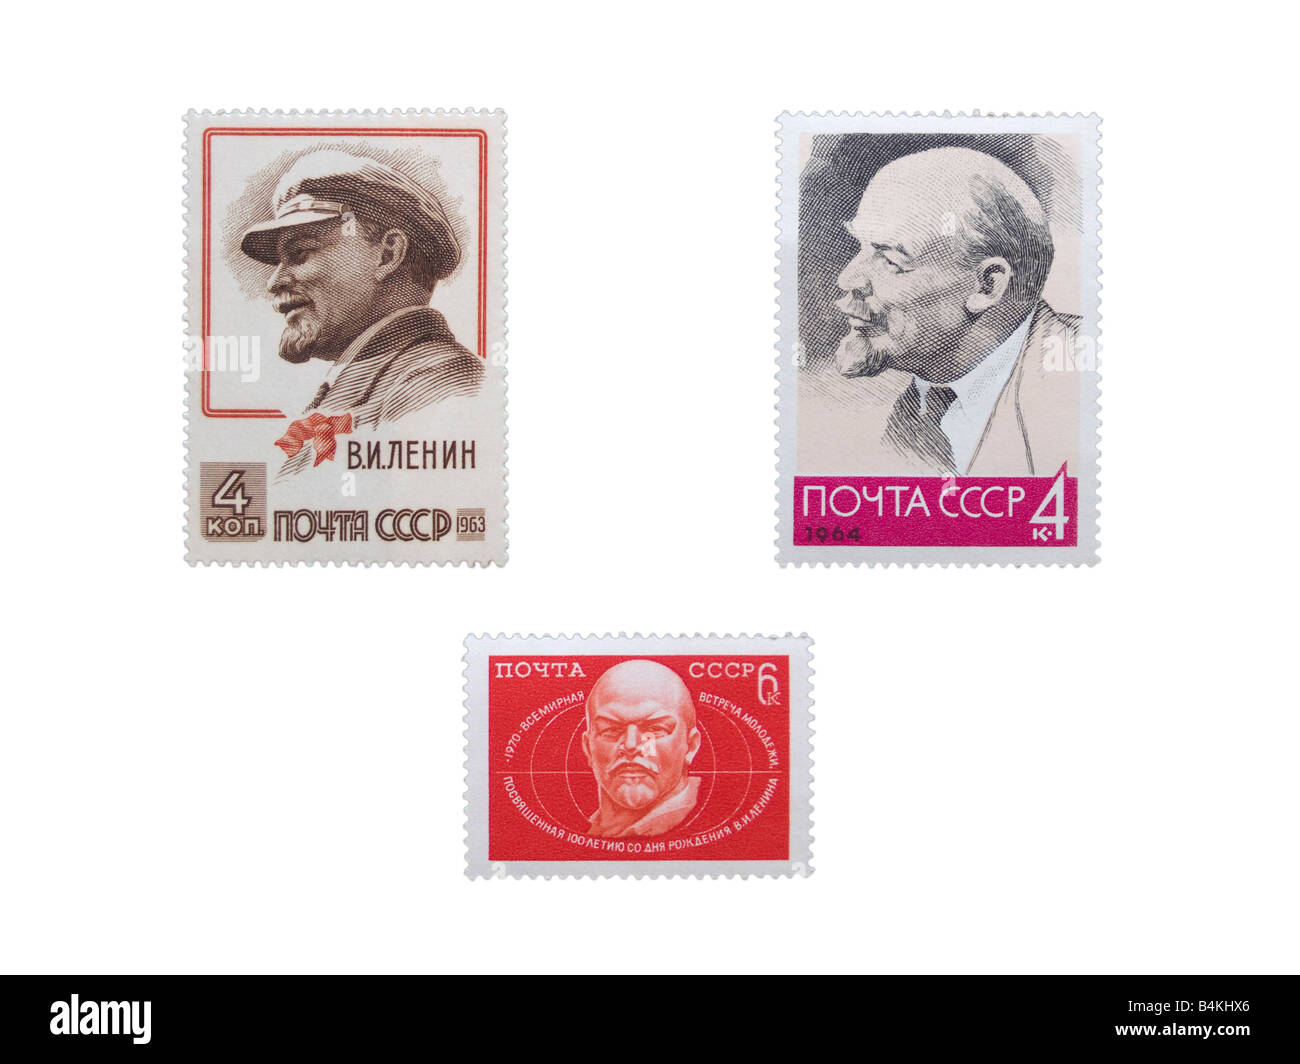 Historic Postage Stamps Of The Ussr Stock Photos & Historic Postage